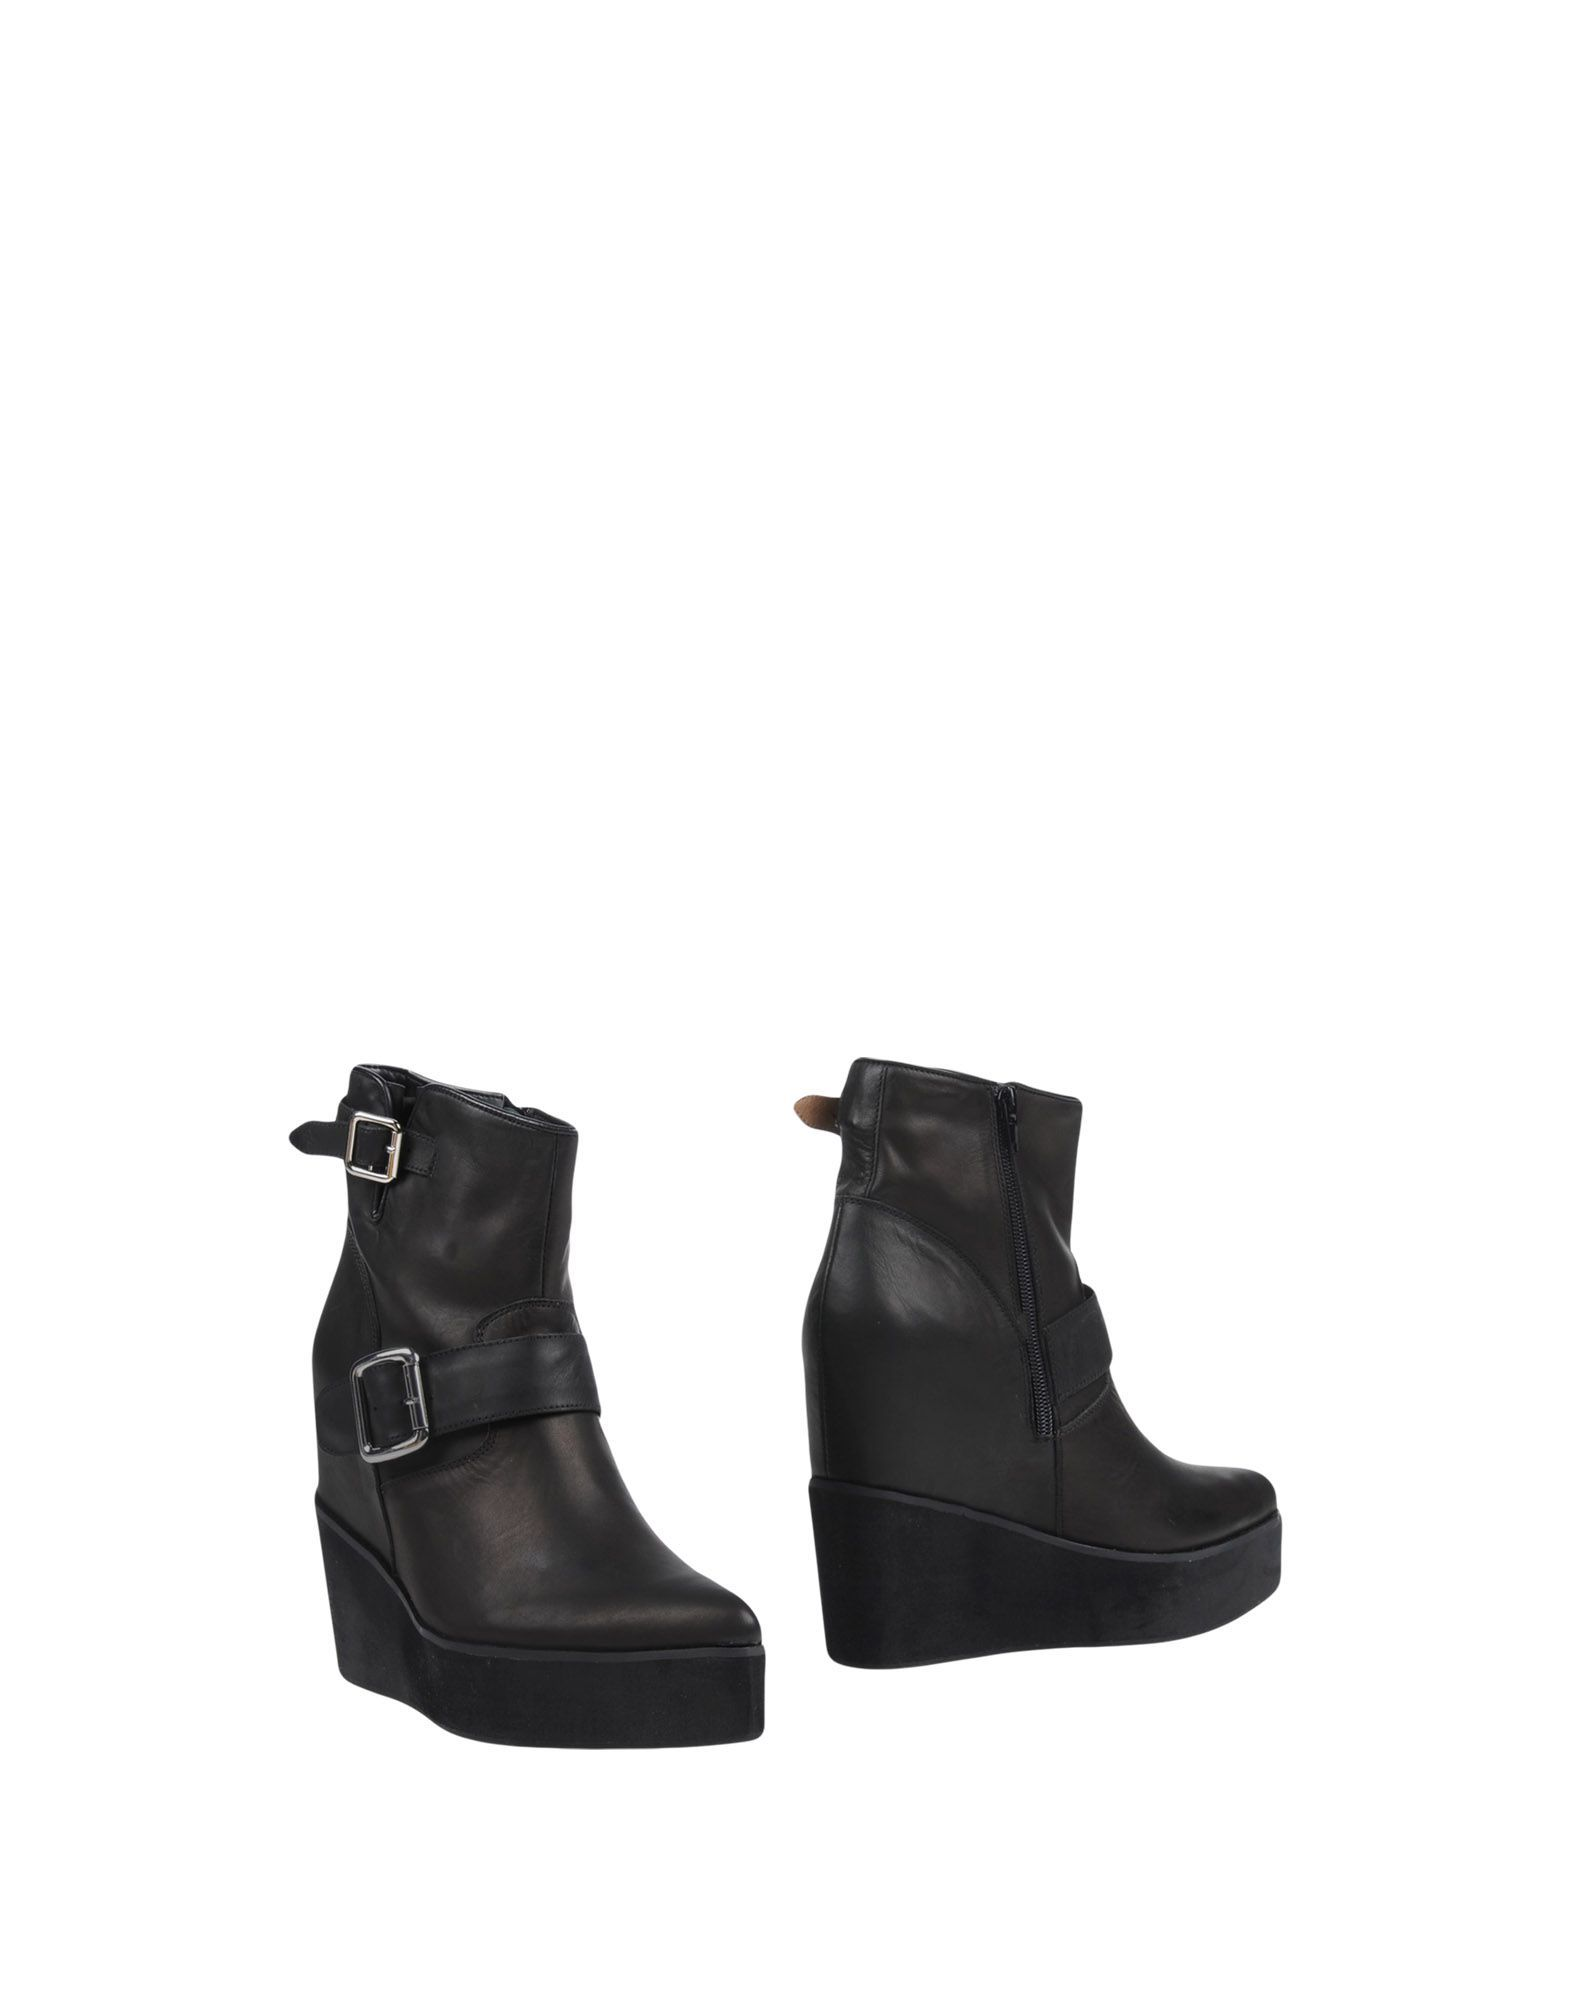 Jeffrey Campbell Black Leather Wedge Heel Boots